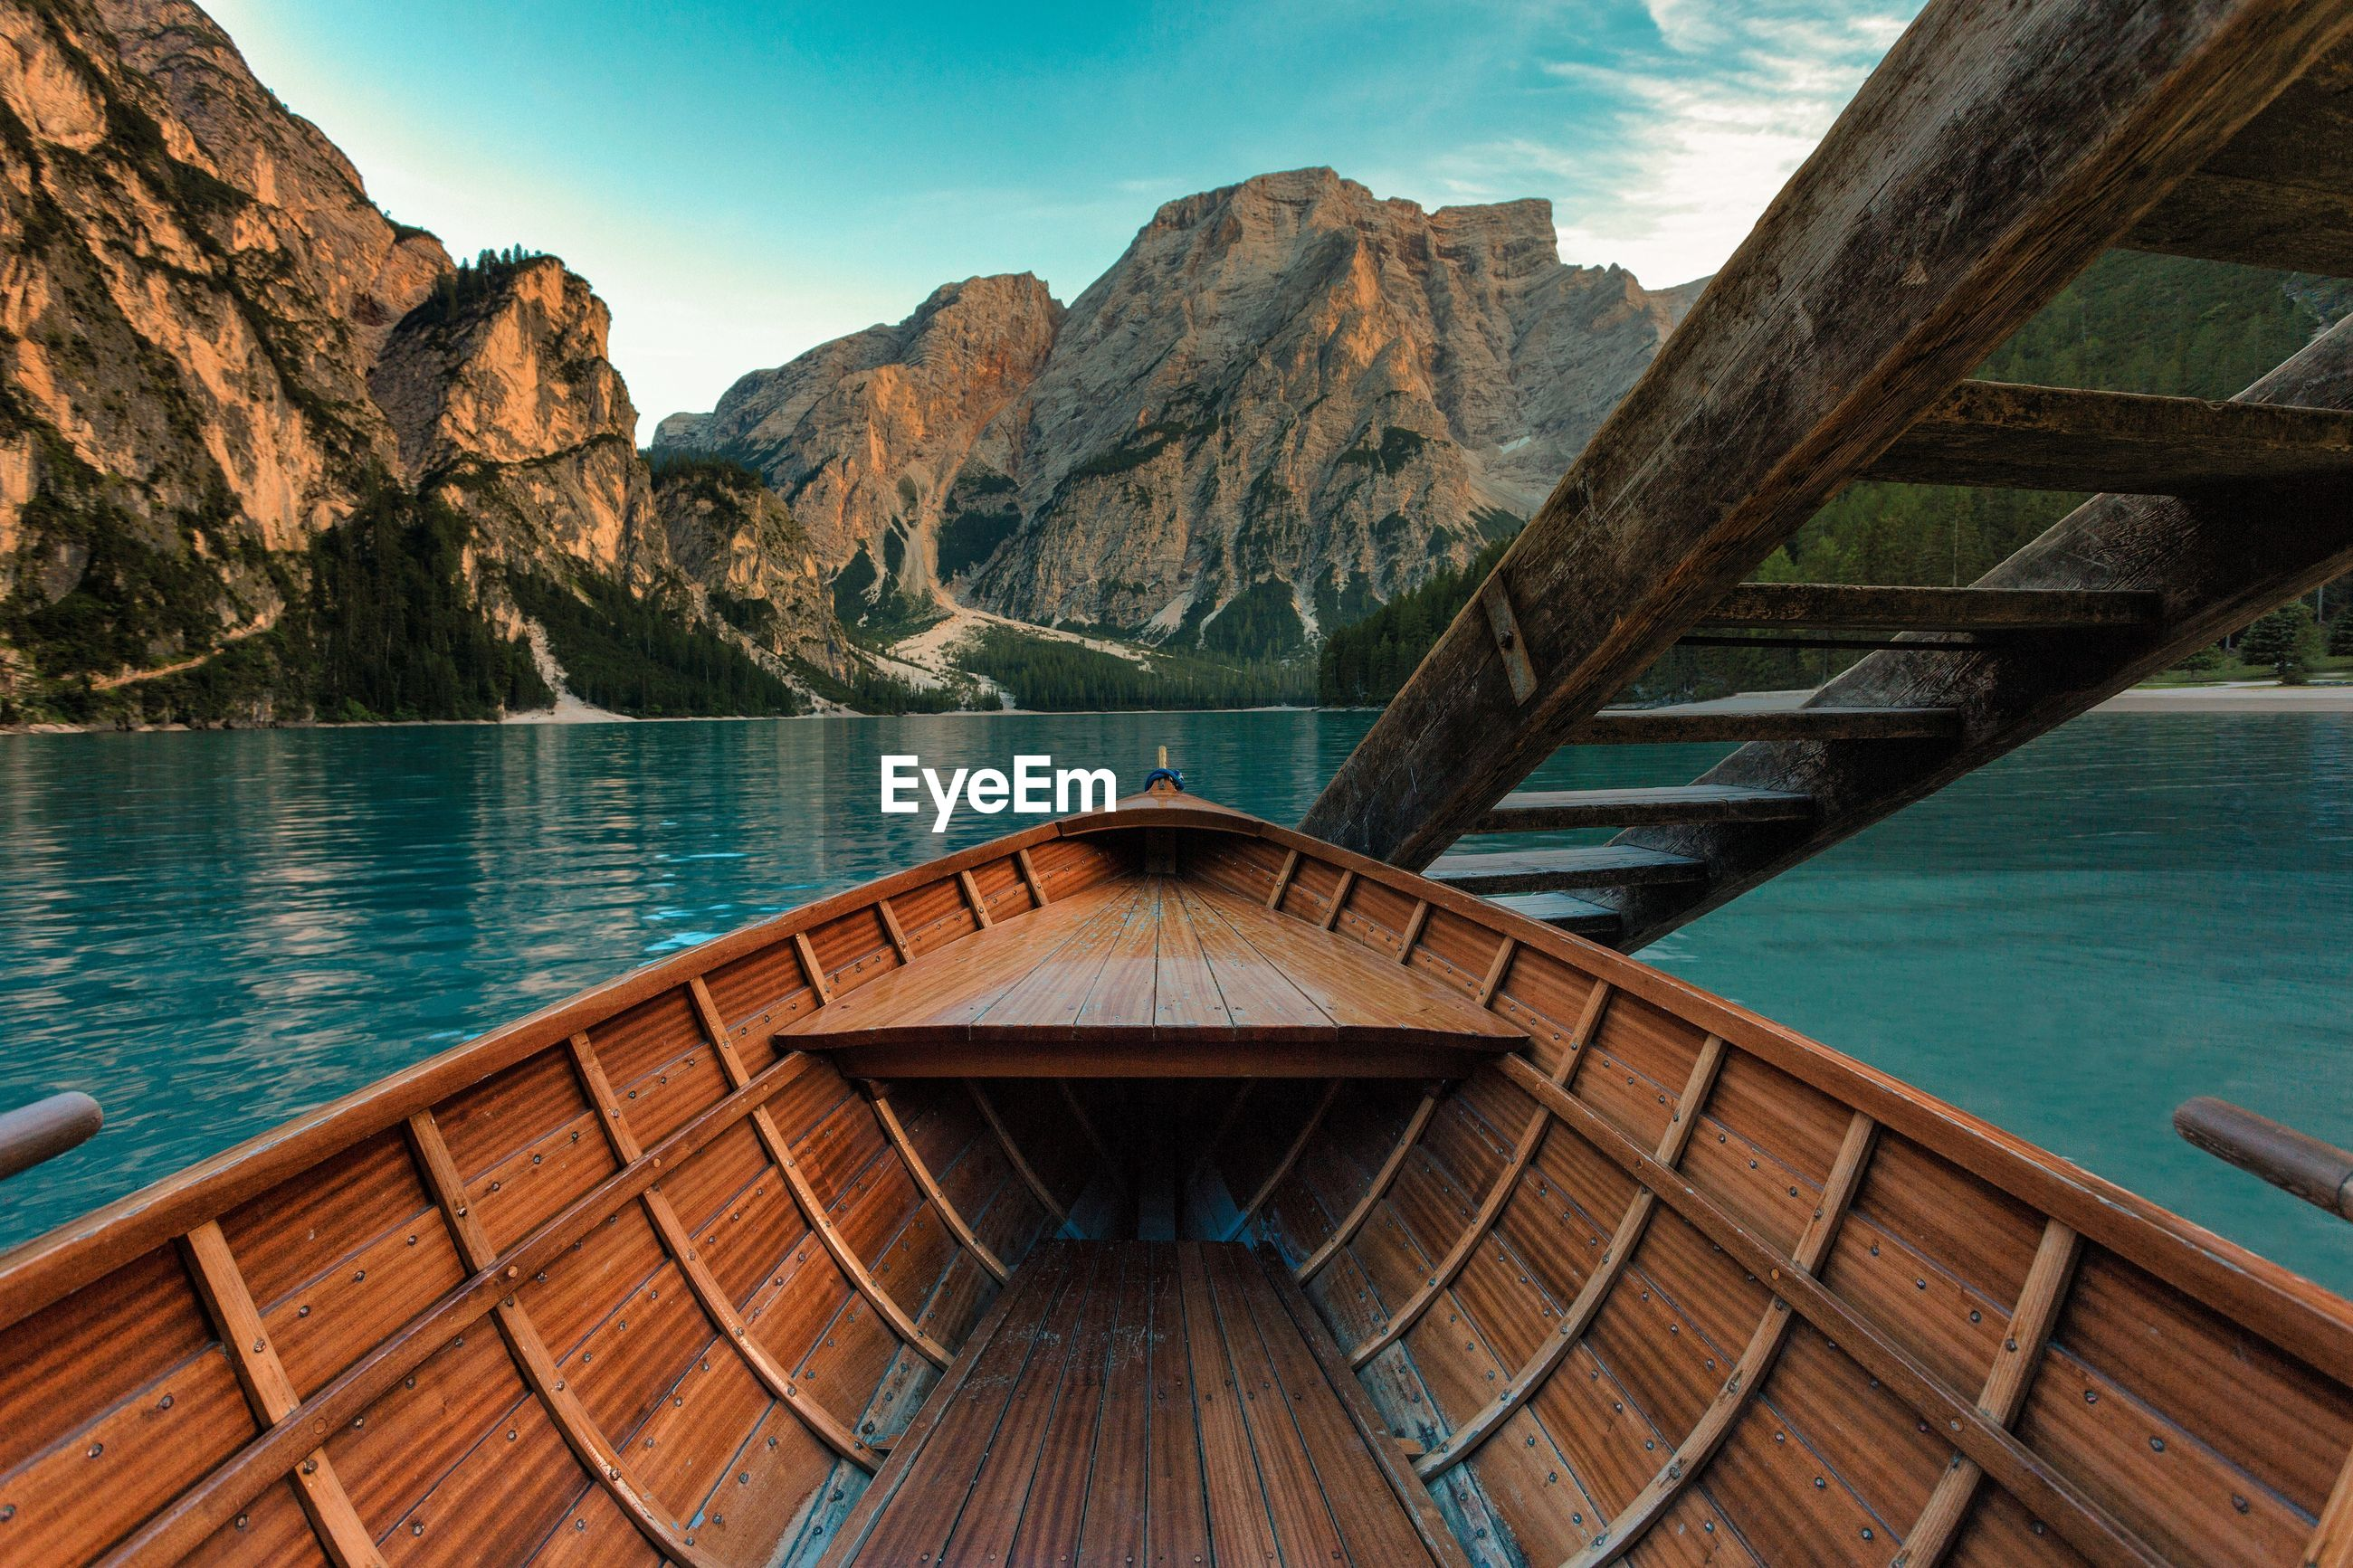 Boat in lake against mountains